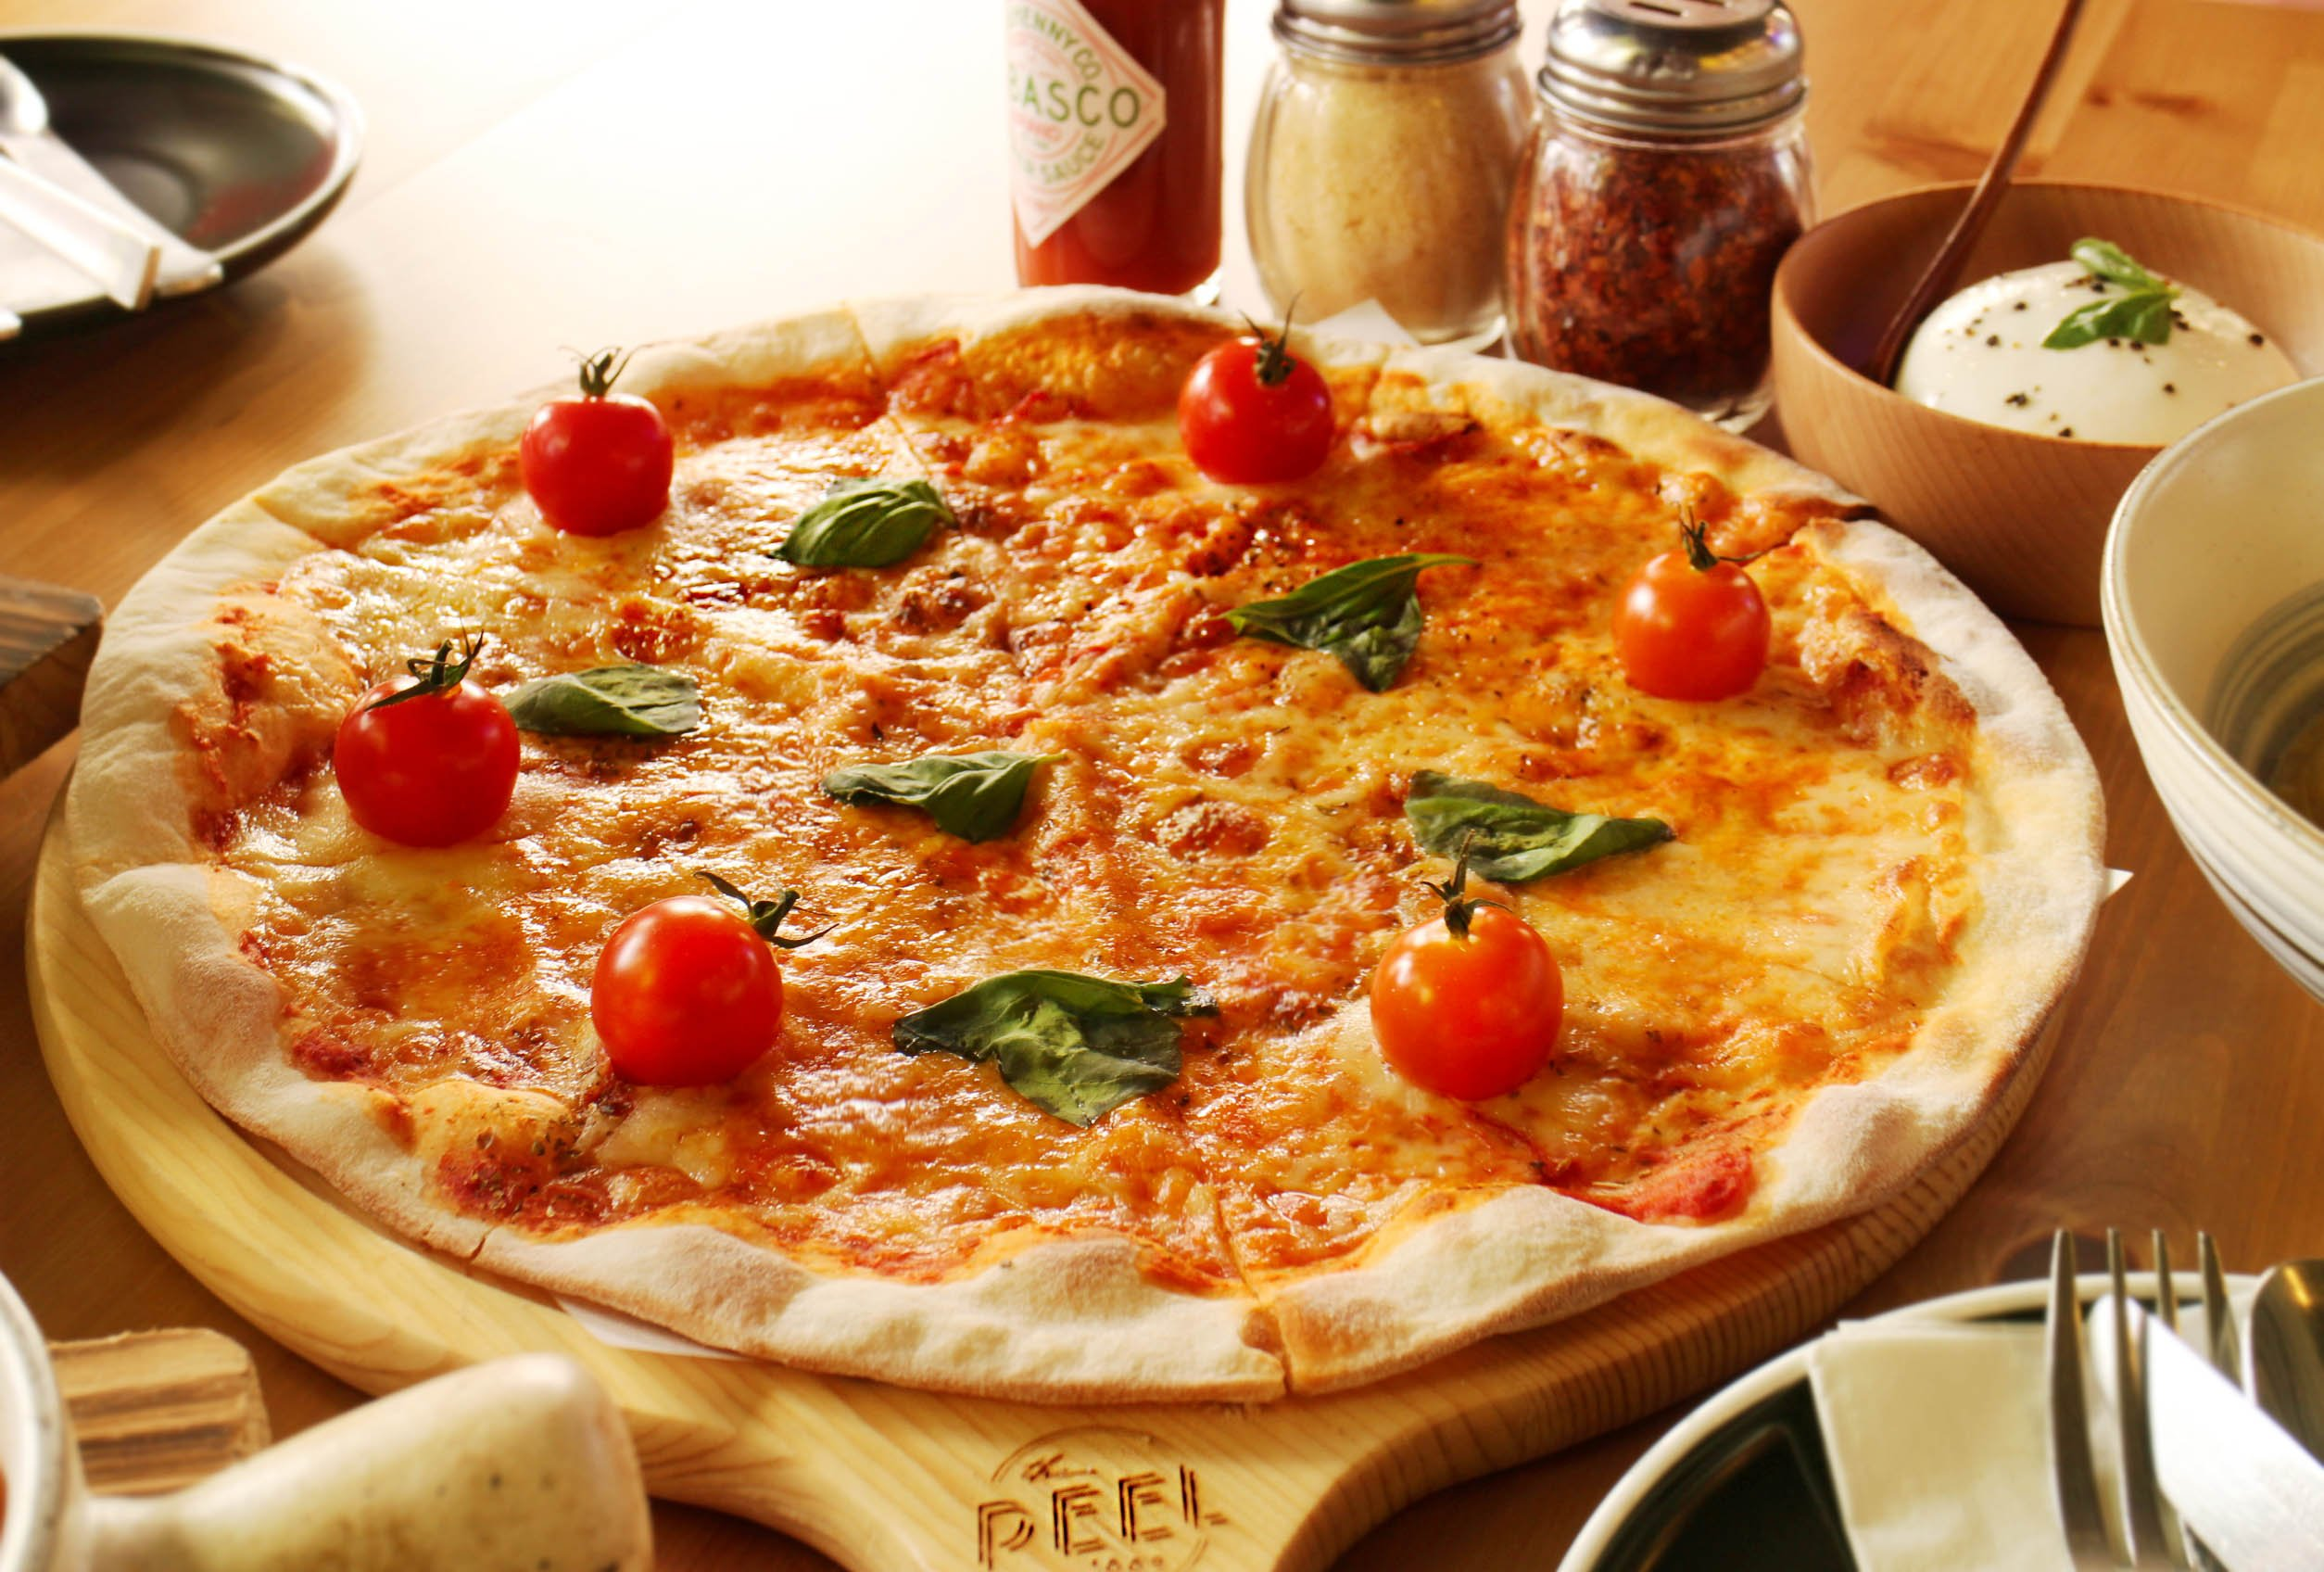 The Margherita at The Peel is served with a generous ball of Burrata cheese, found at MyVillage.